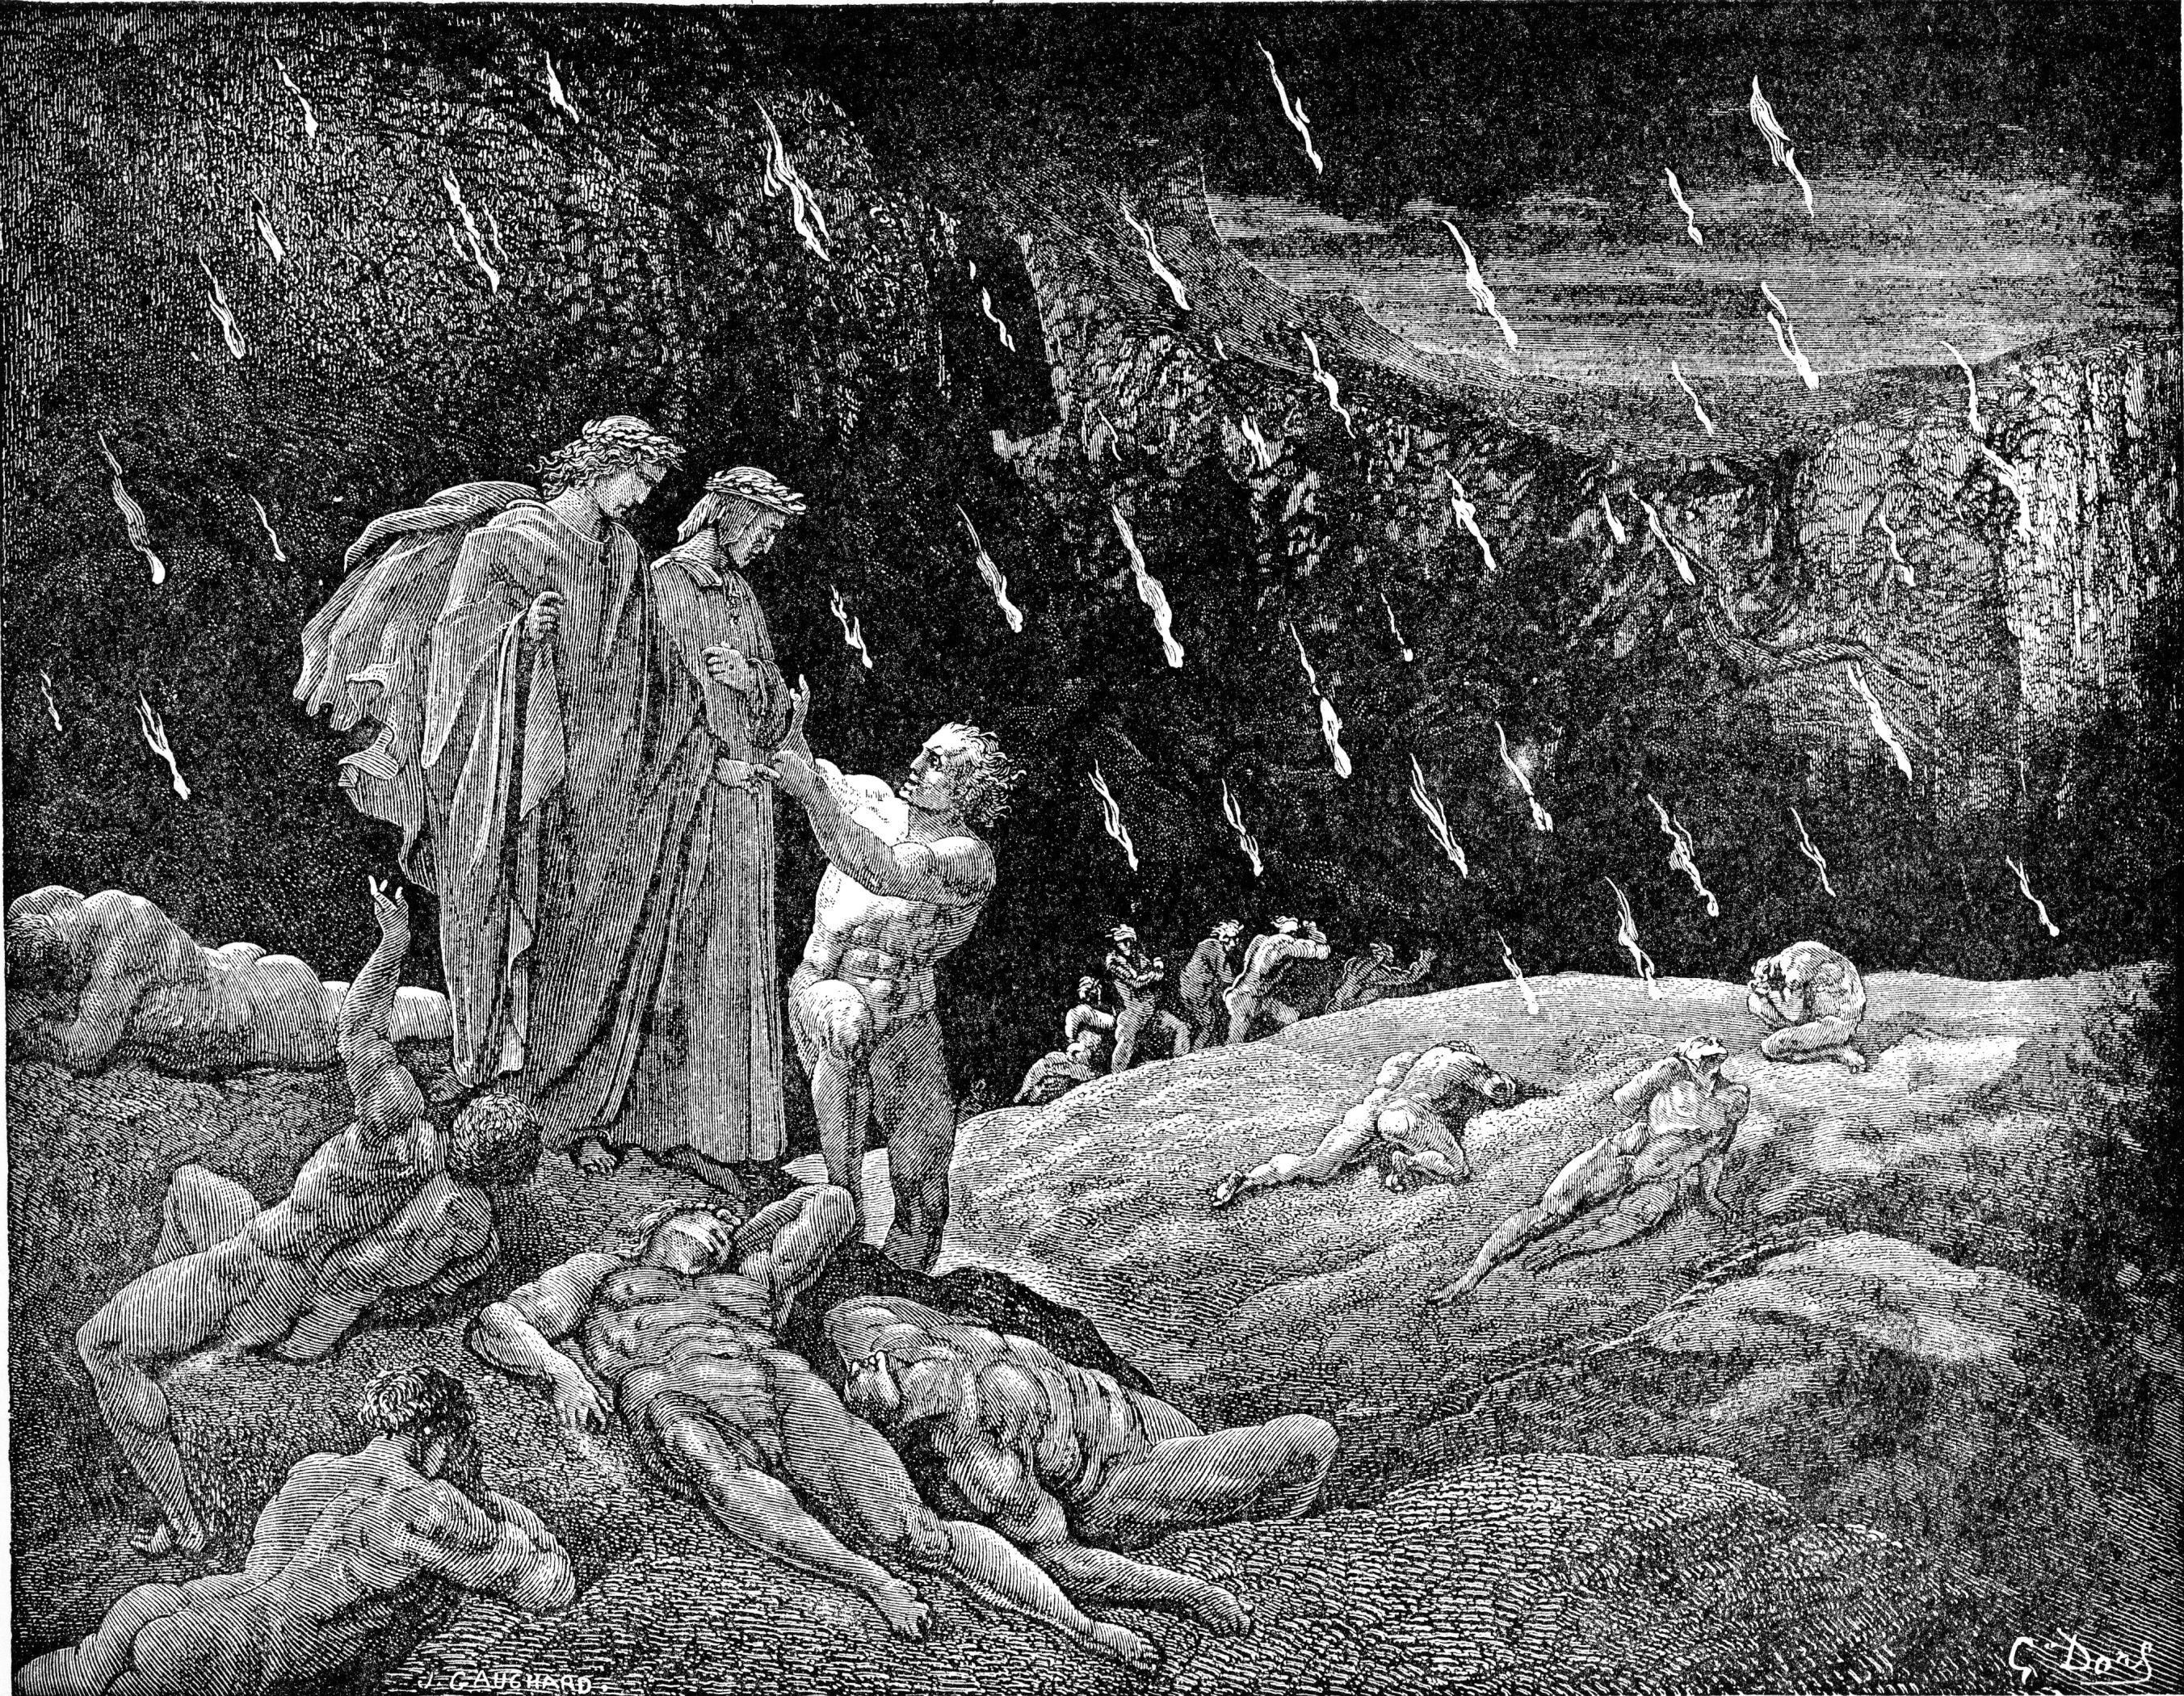 dantes inferno essay Allusions in dante's infemo sarah landas  below is the essay's first paragraph  the allusions in dante's inferno.